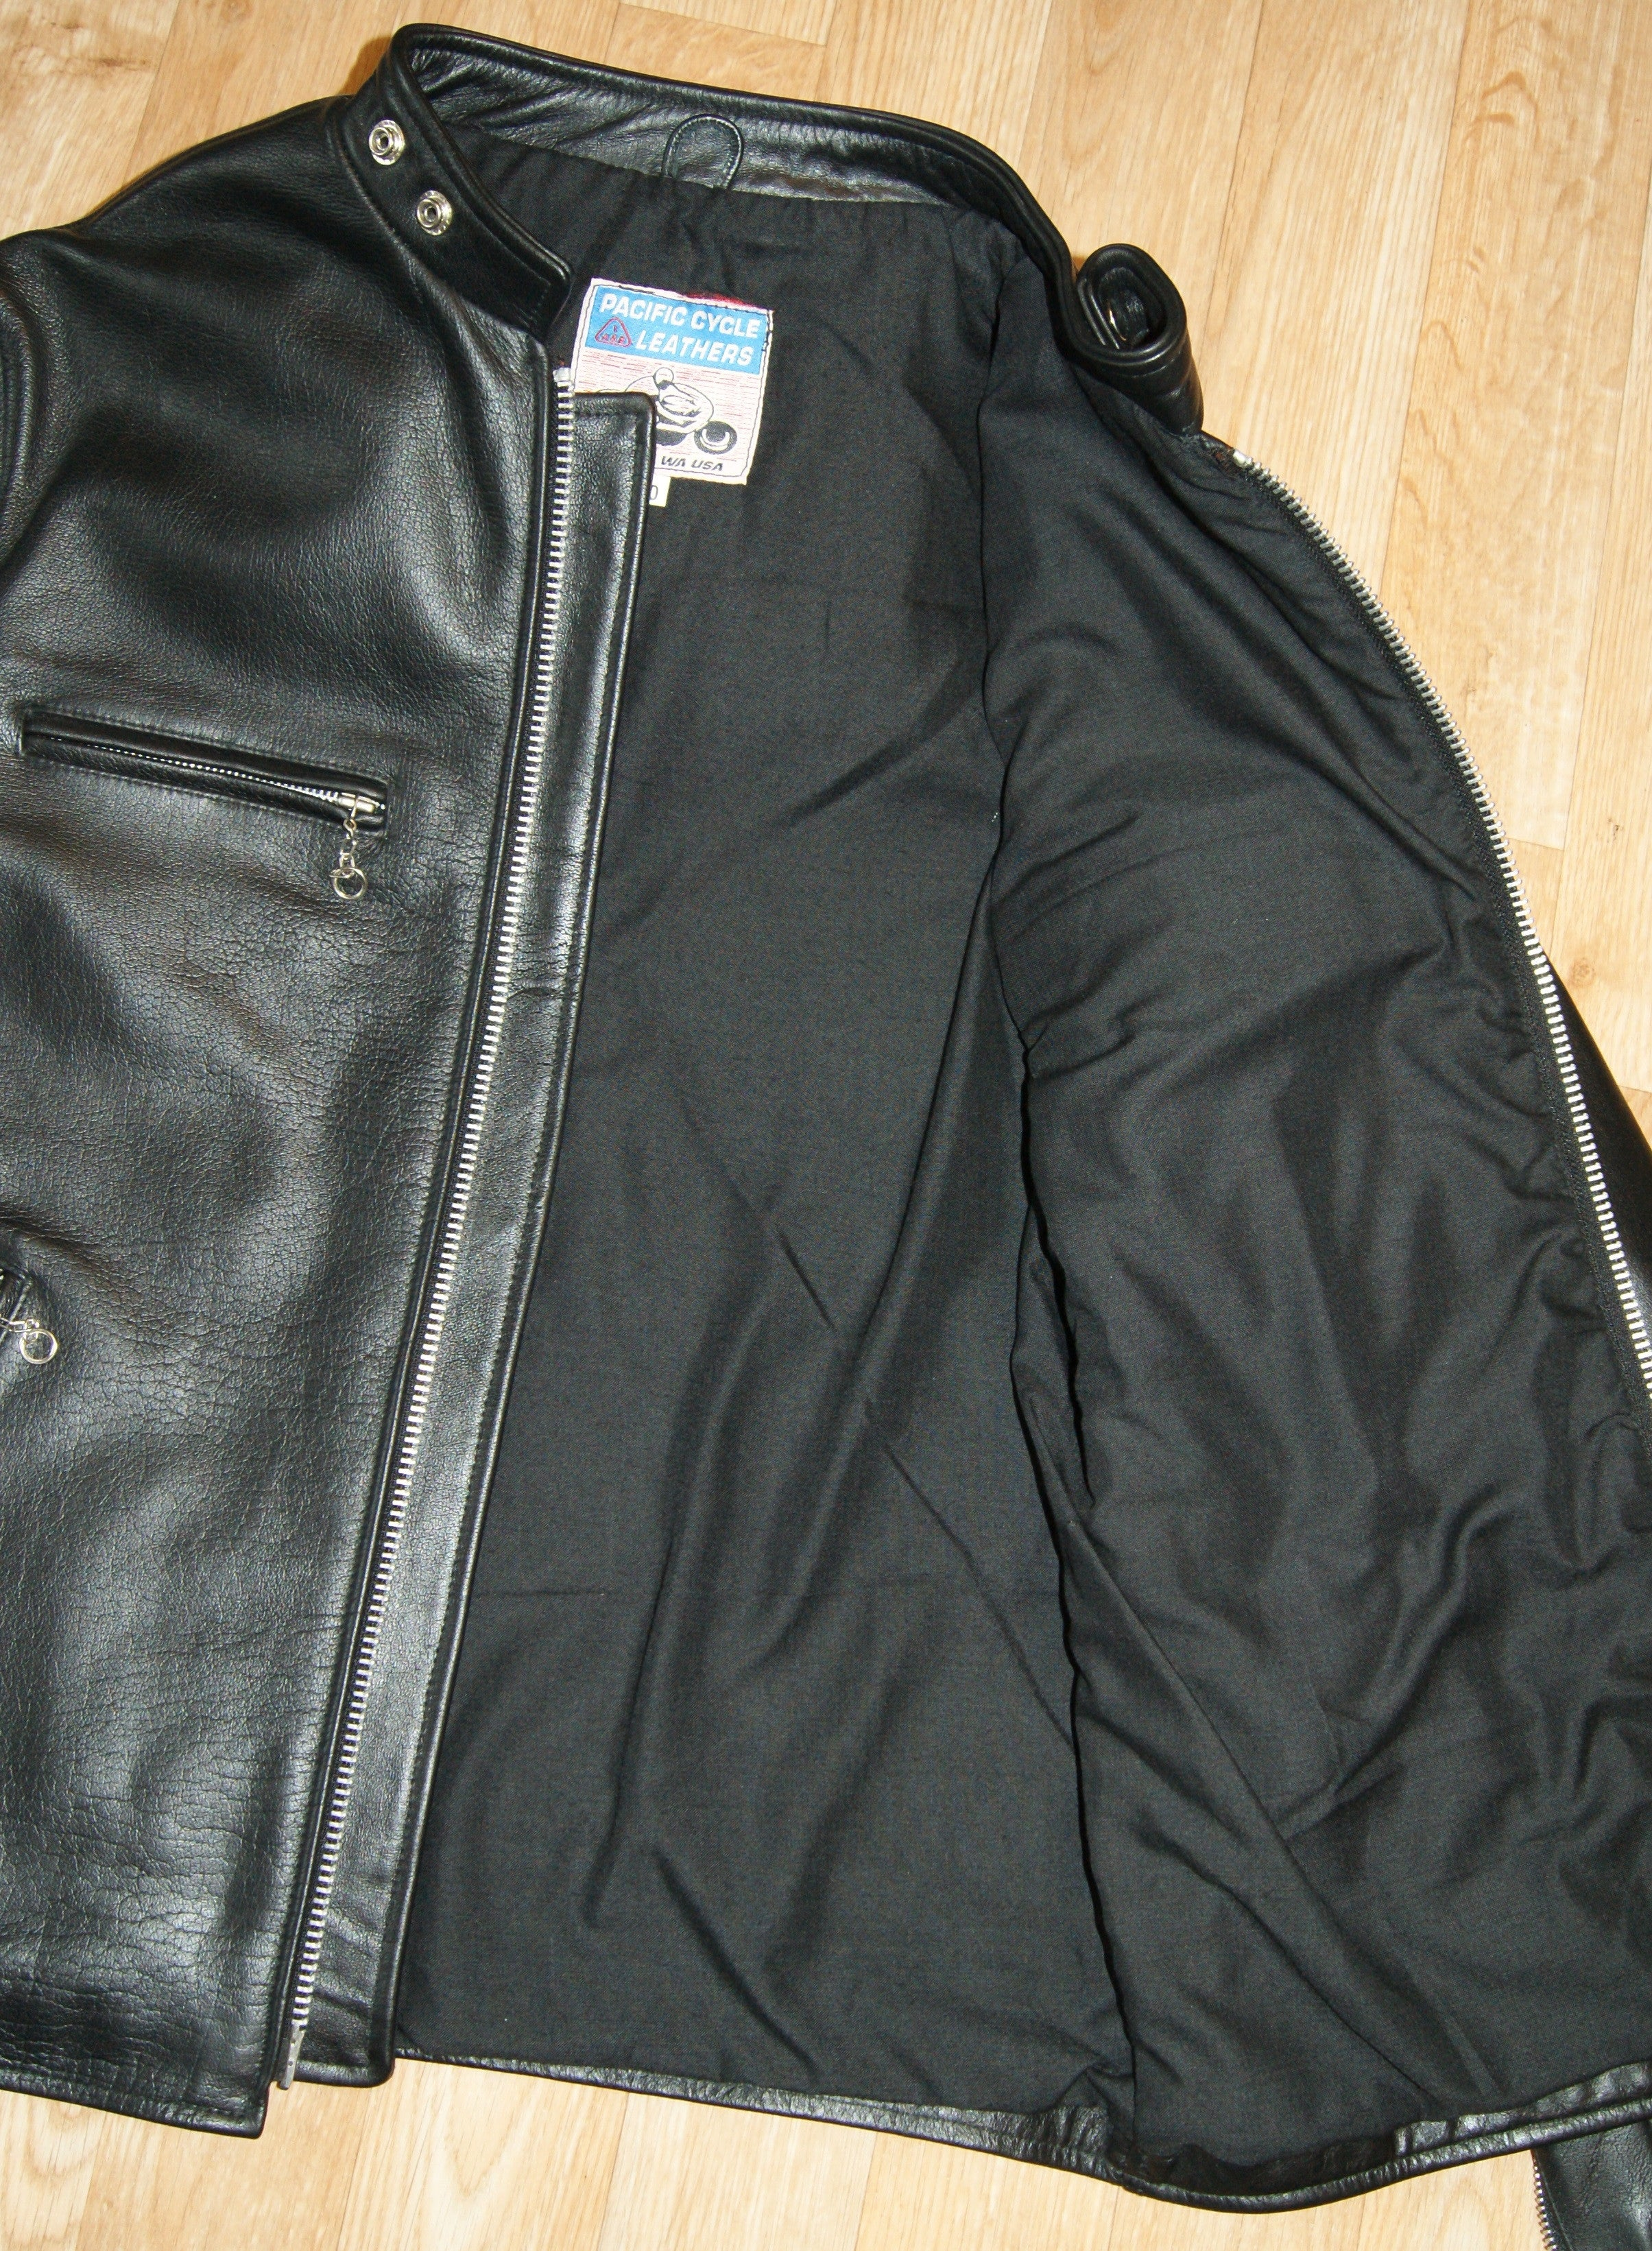 Pacific Cycle Four-Pocket, size 40, Black Cowhide